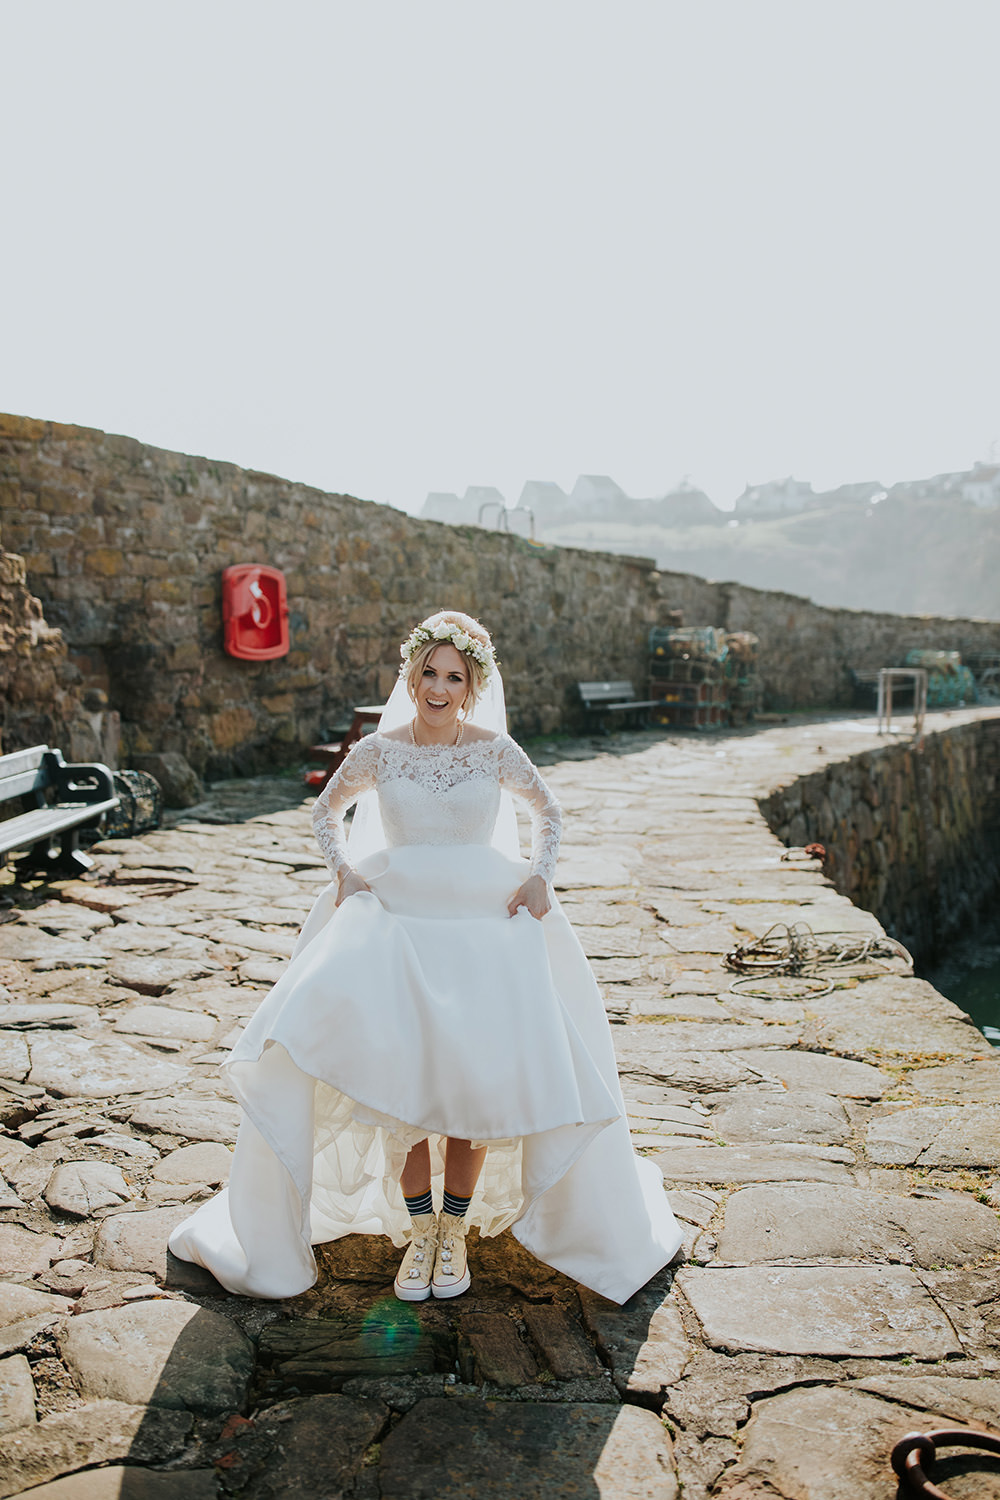 Dress Gown Bride Bridal Lace Long Sleeves Bardot Off Shoulder Train Veil Trainers Socks Scandi Foliage Wedding Ross Alexander Photography